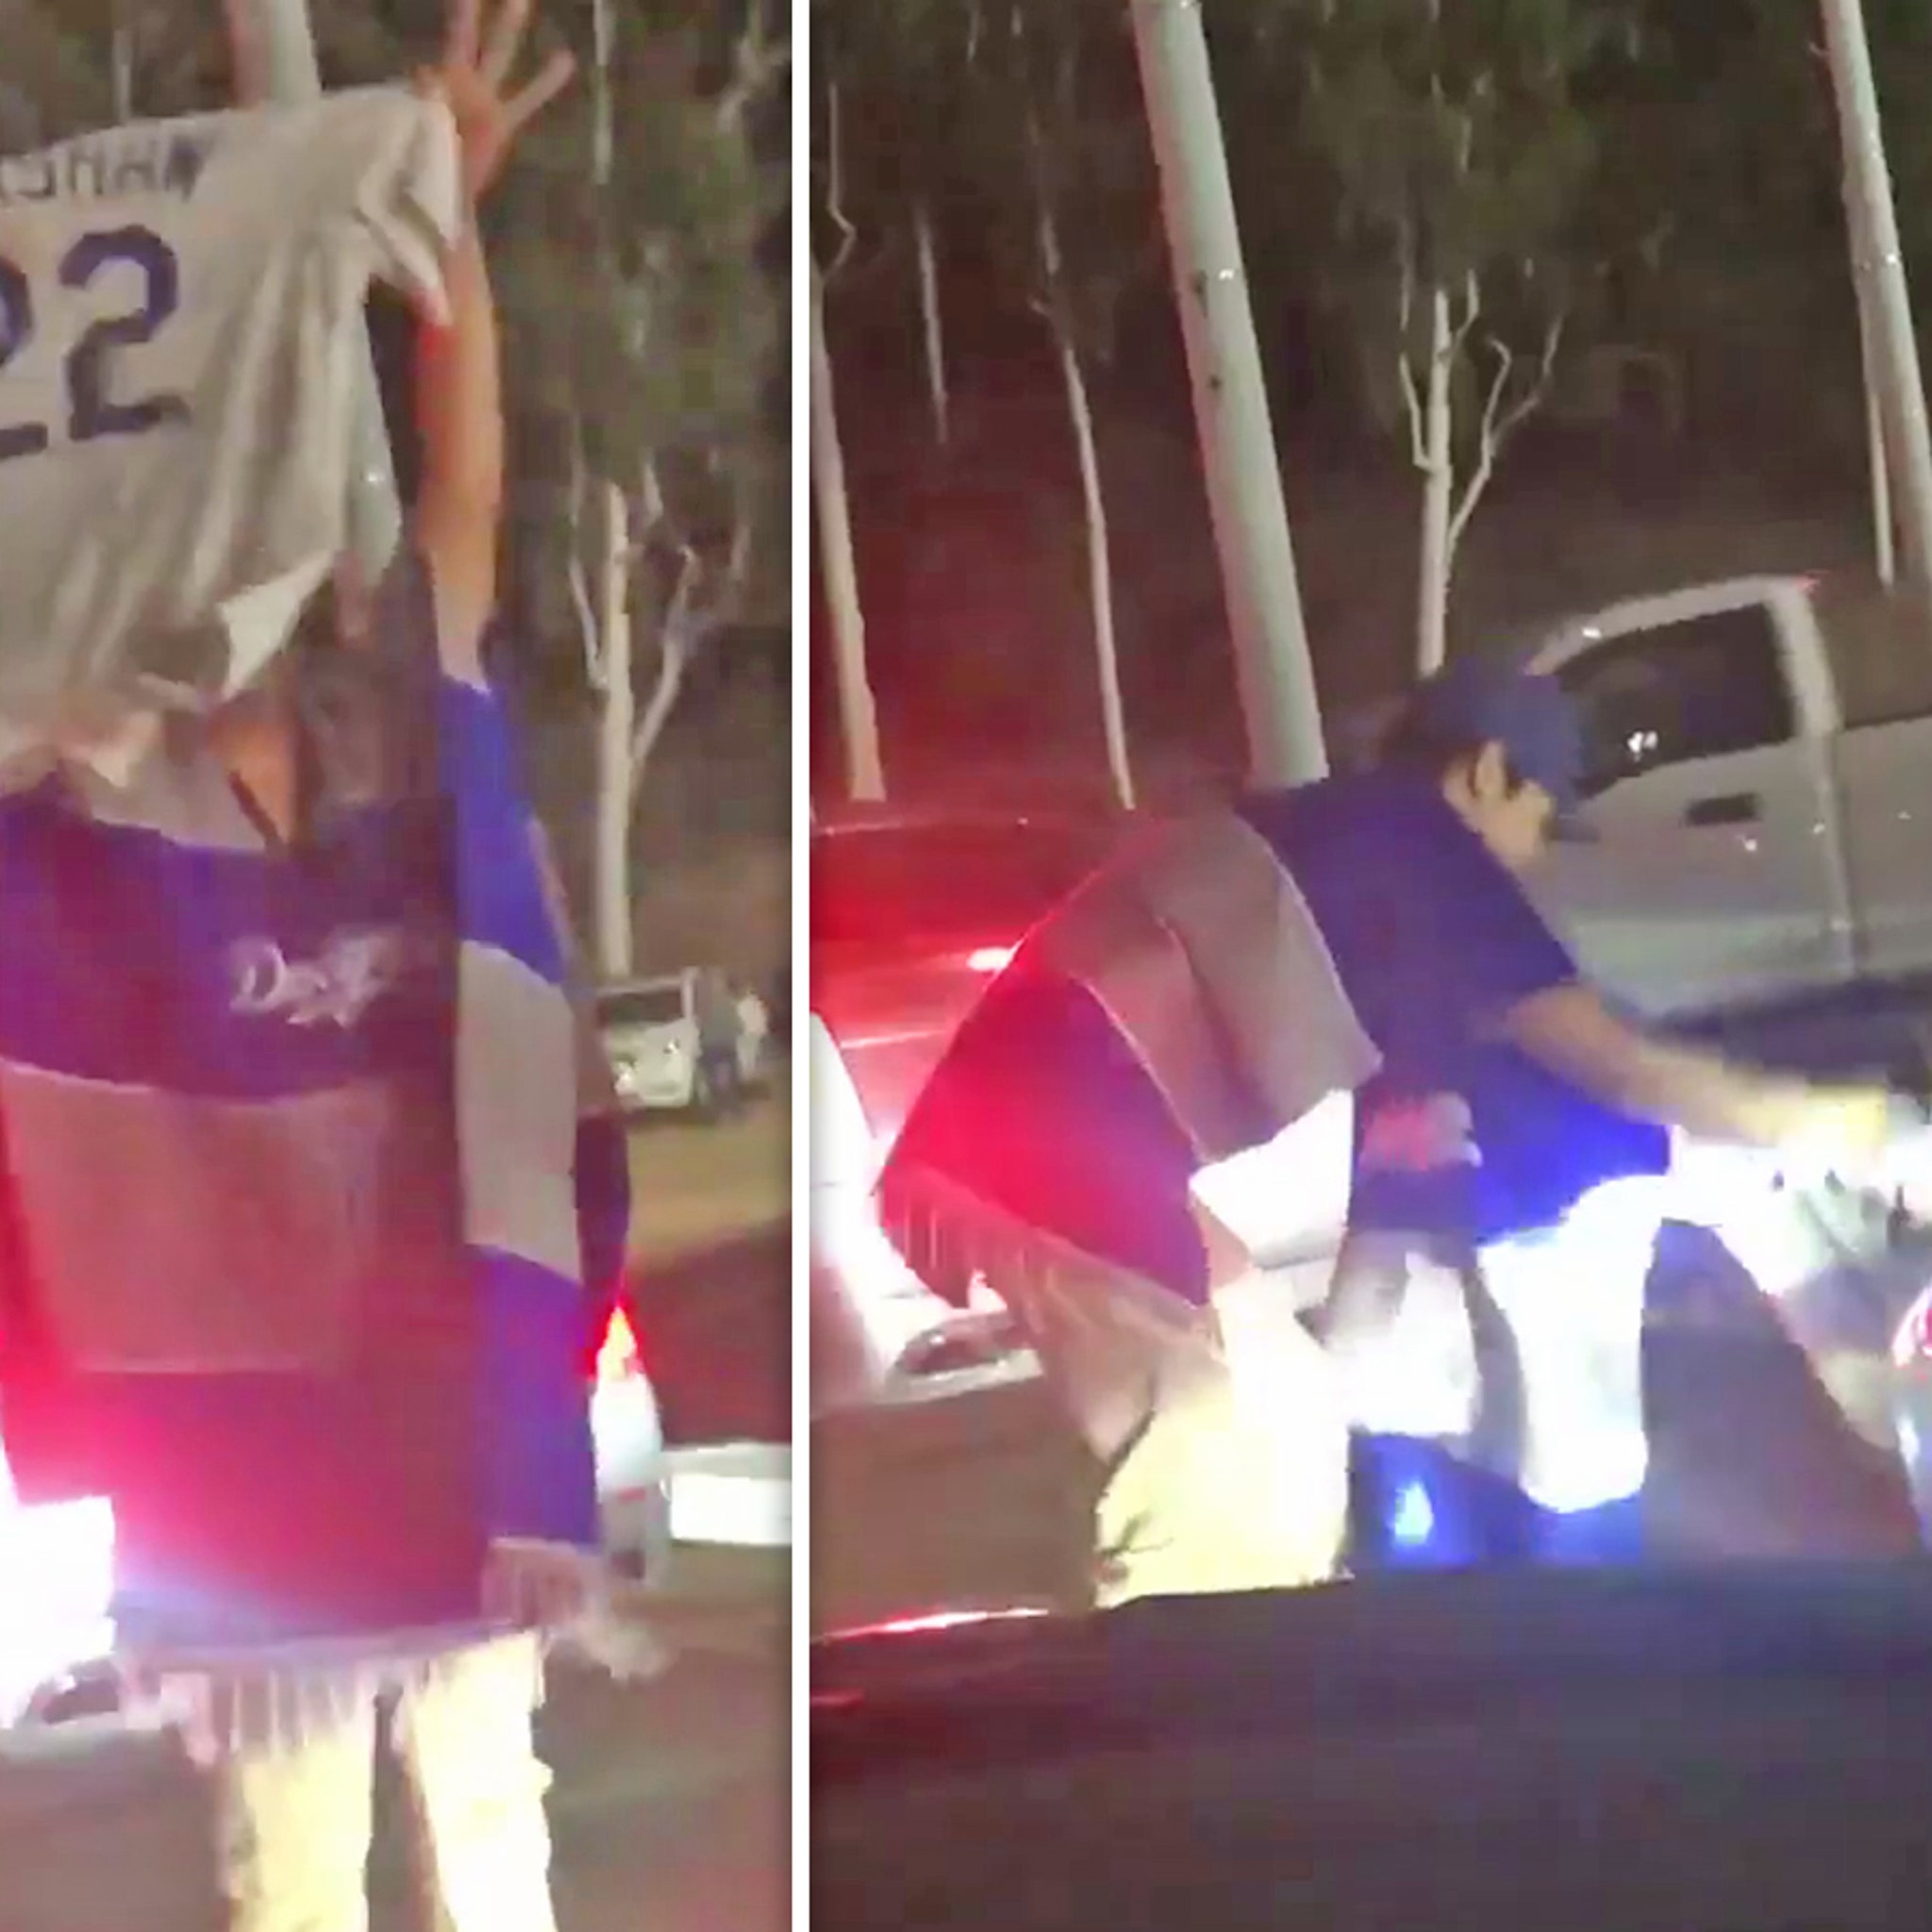 Clayton Kershaw Jersey Run Over At Dodger Stadium After NLDS Collapse